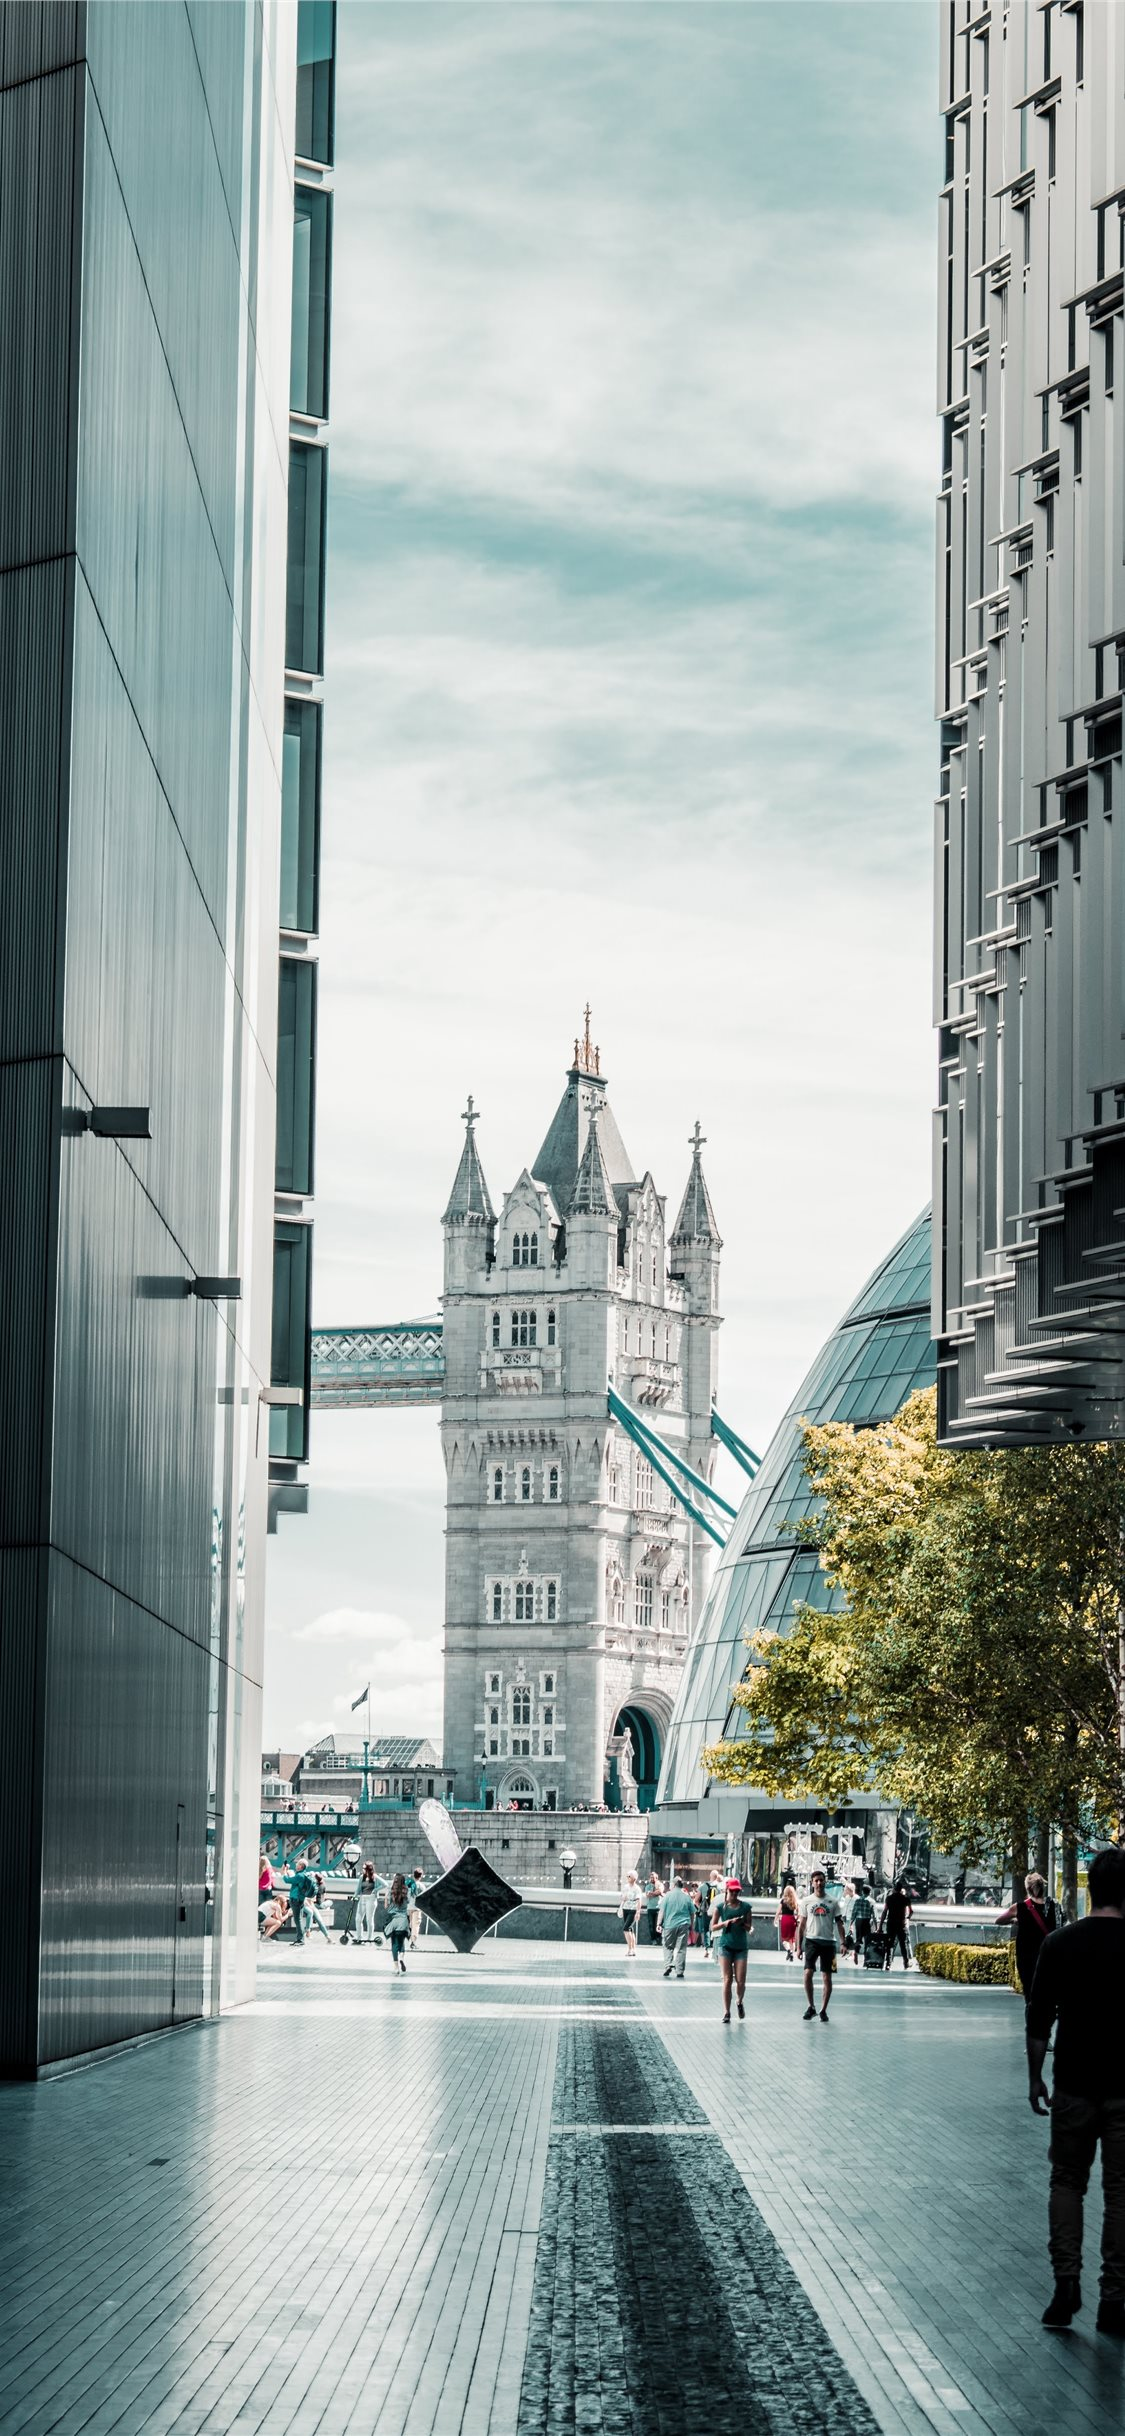 Tower Bridge London England Iphone X Wallpapers Free Download